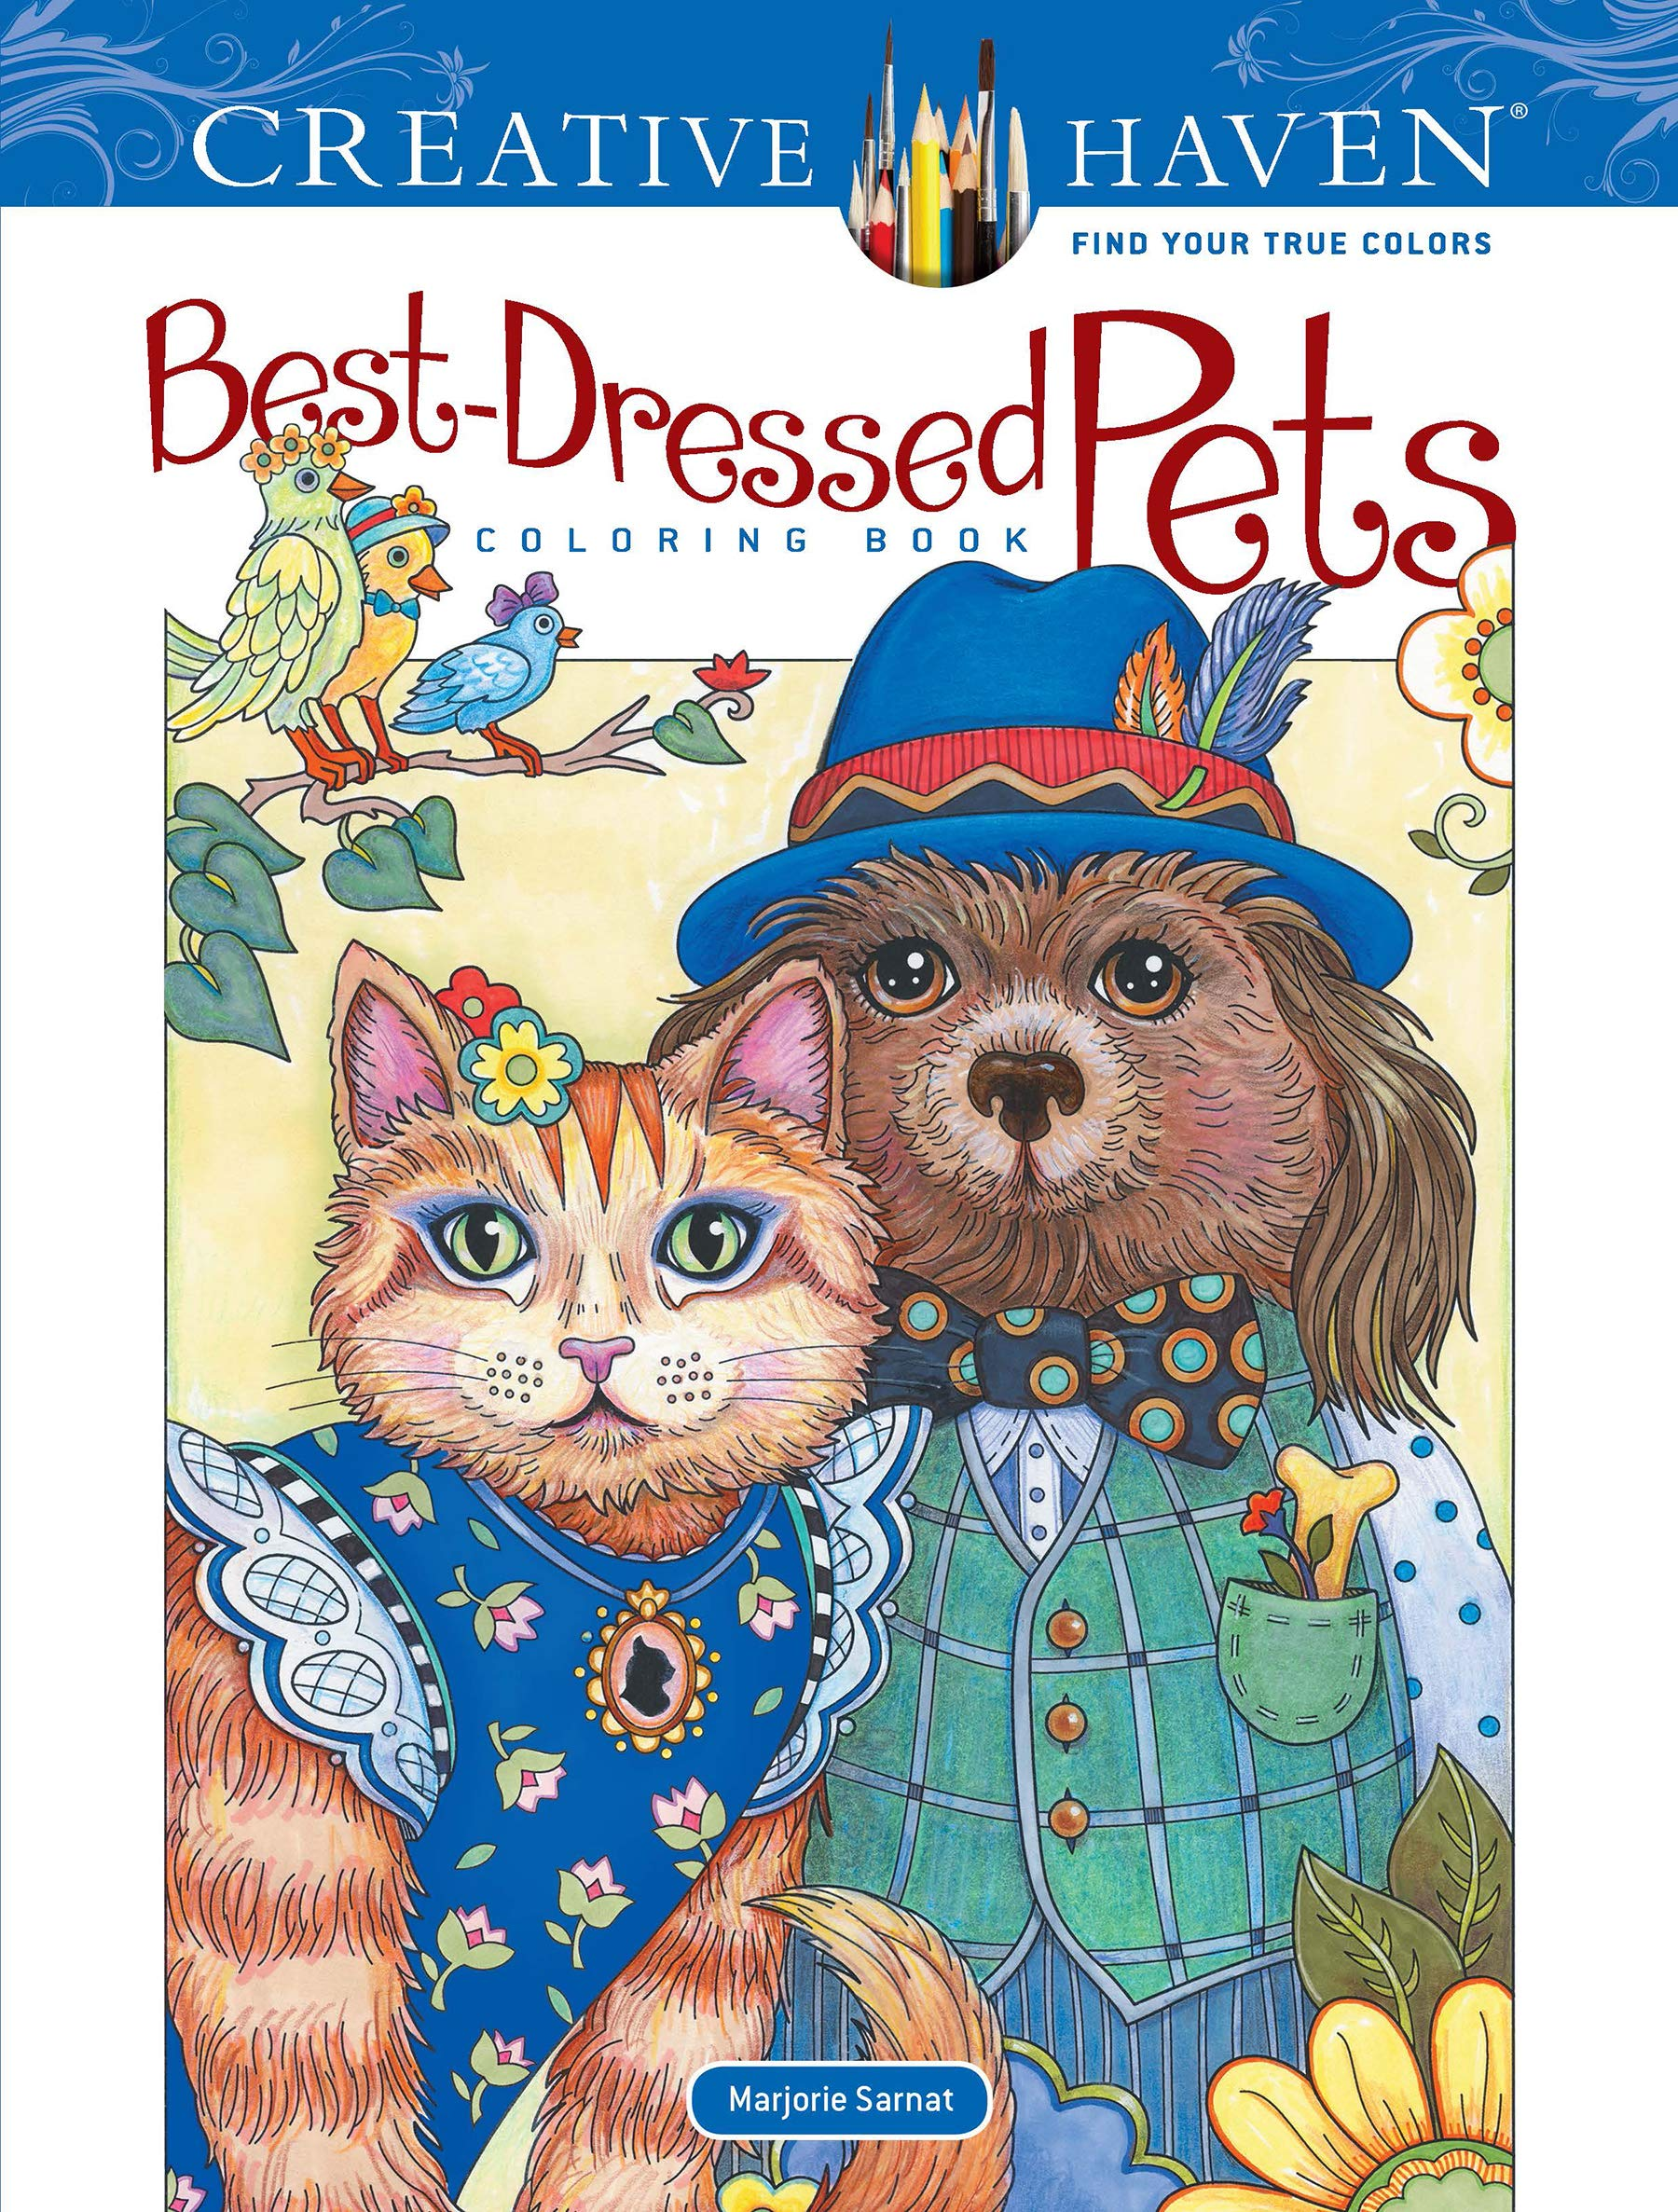 - Amazon.com: Creative Haven Best-Dressed Pets Coloring Book